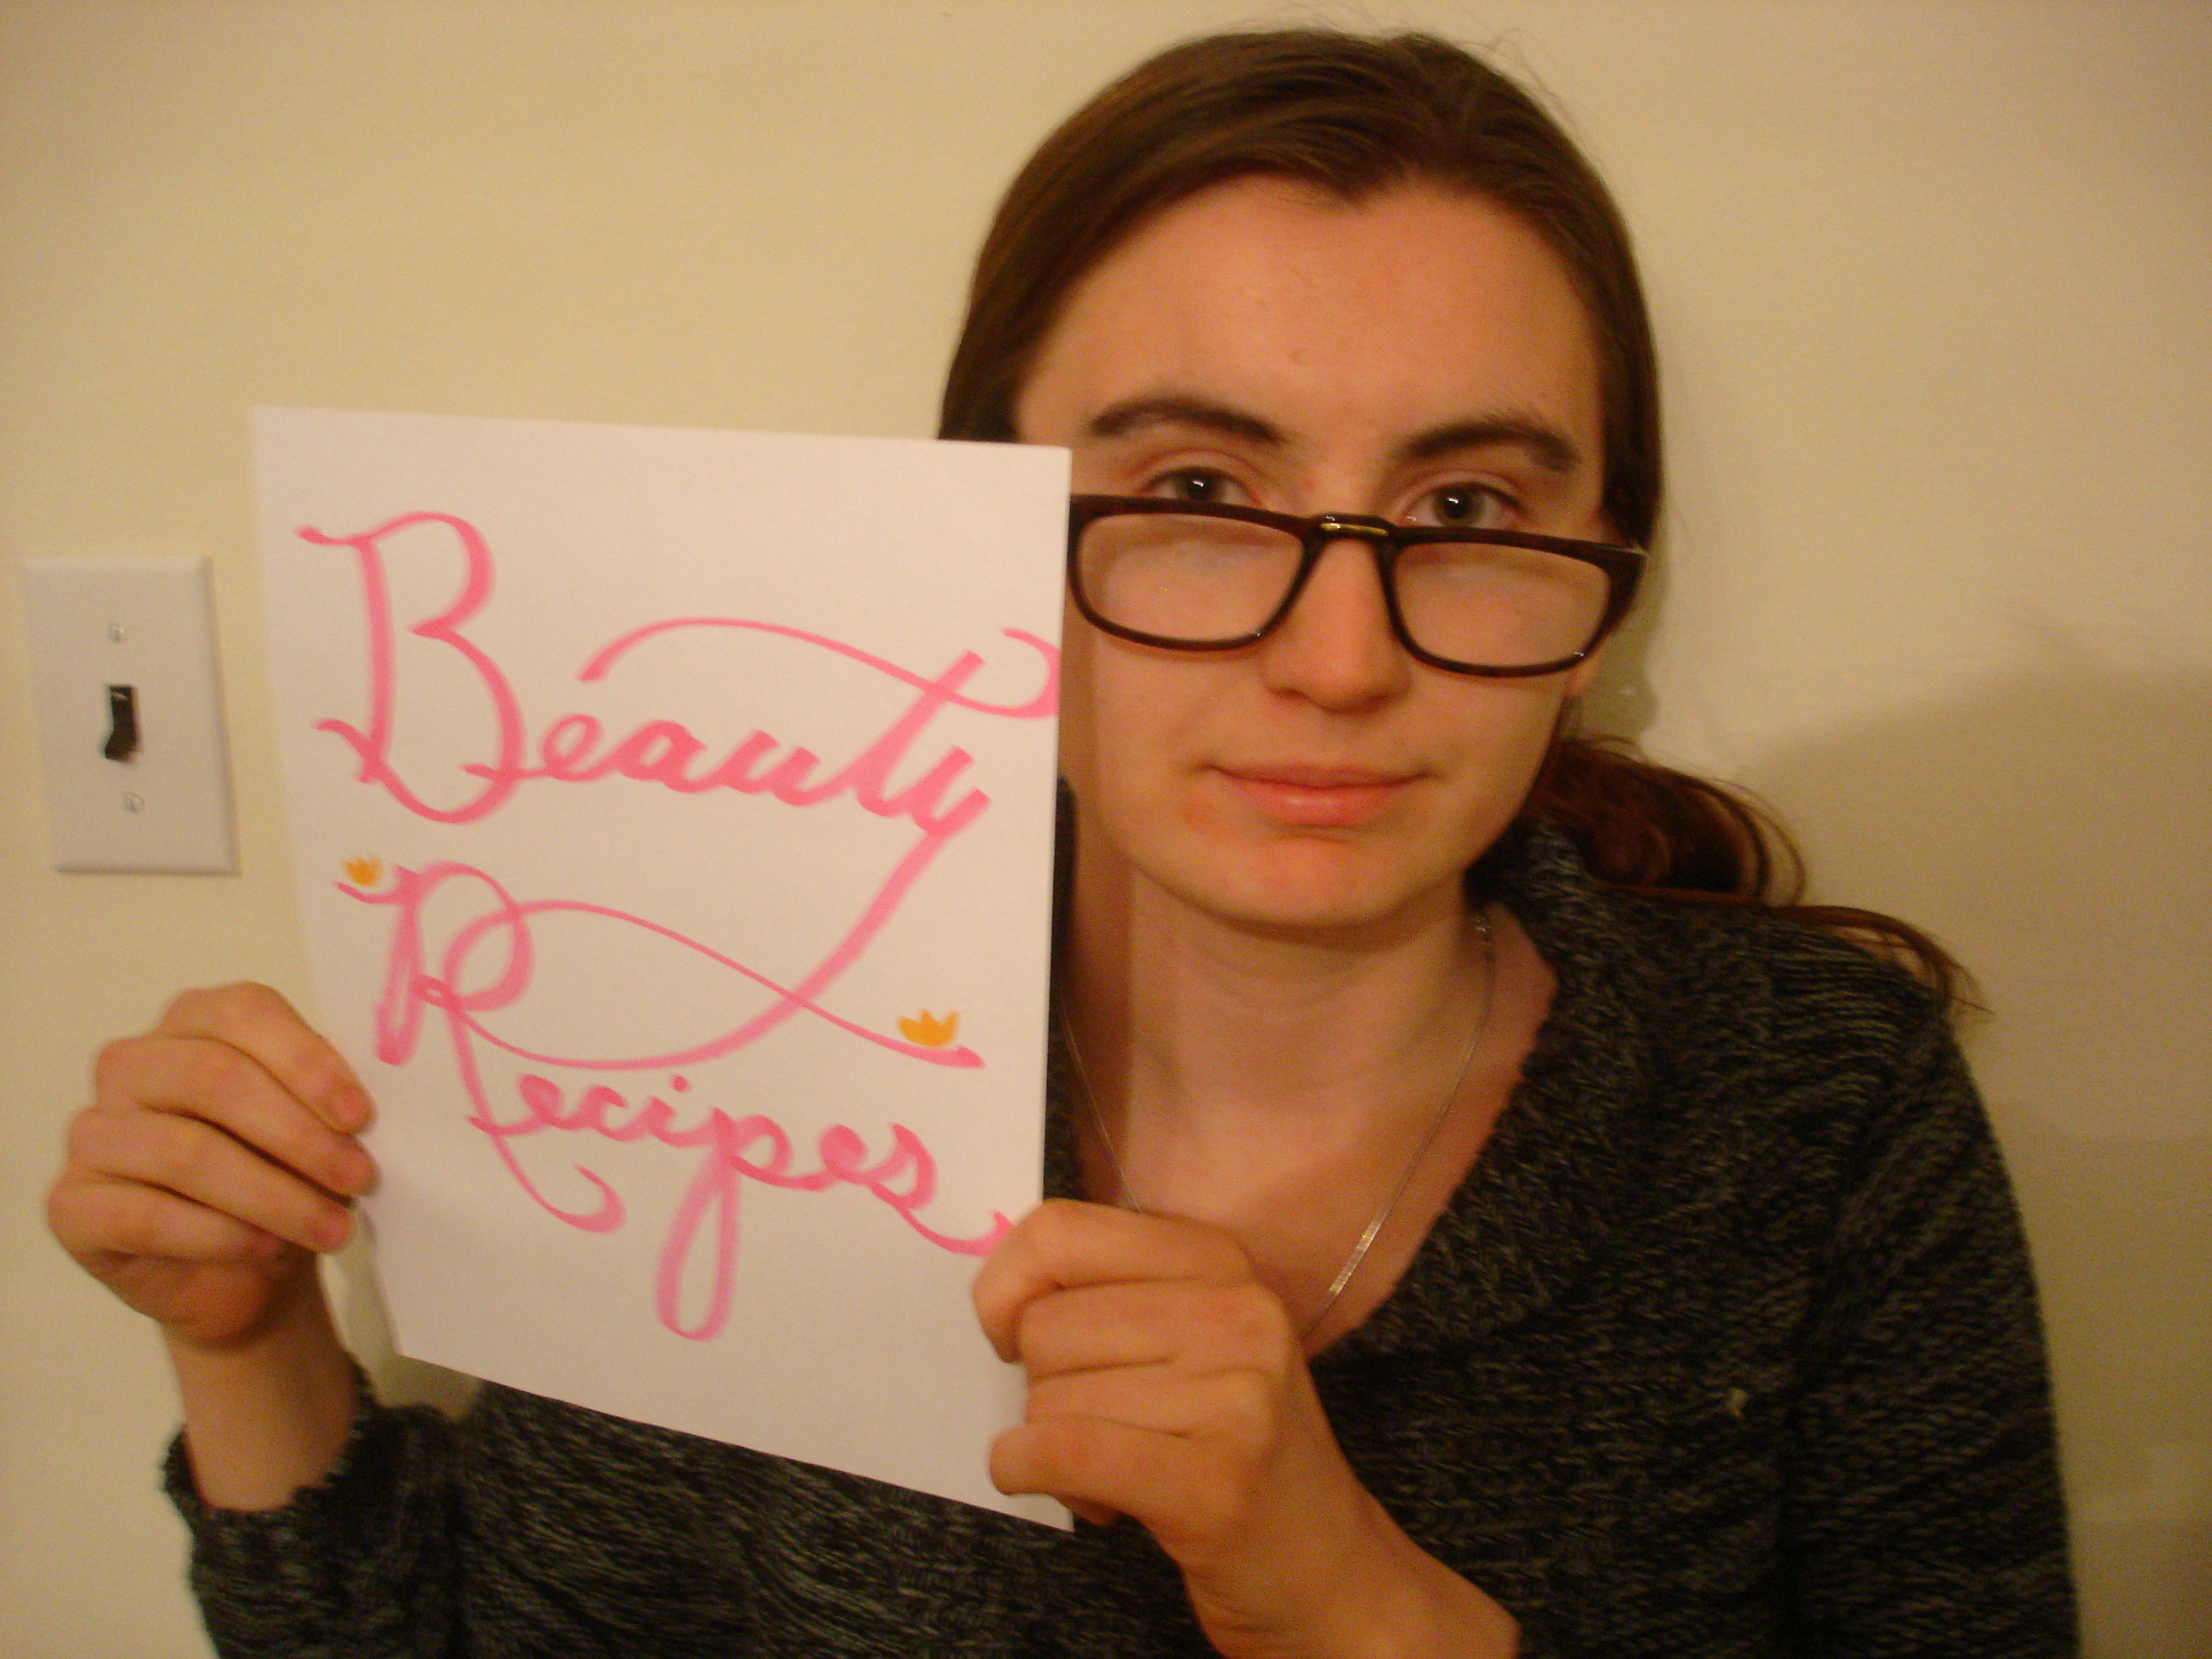 Laura's Recipe for Beauty